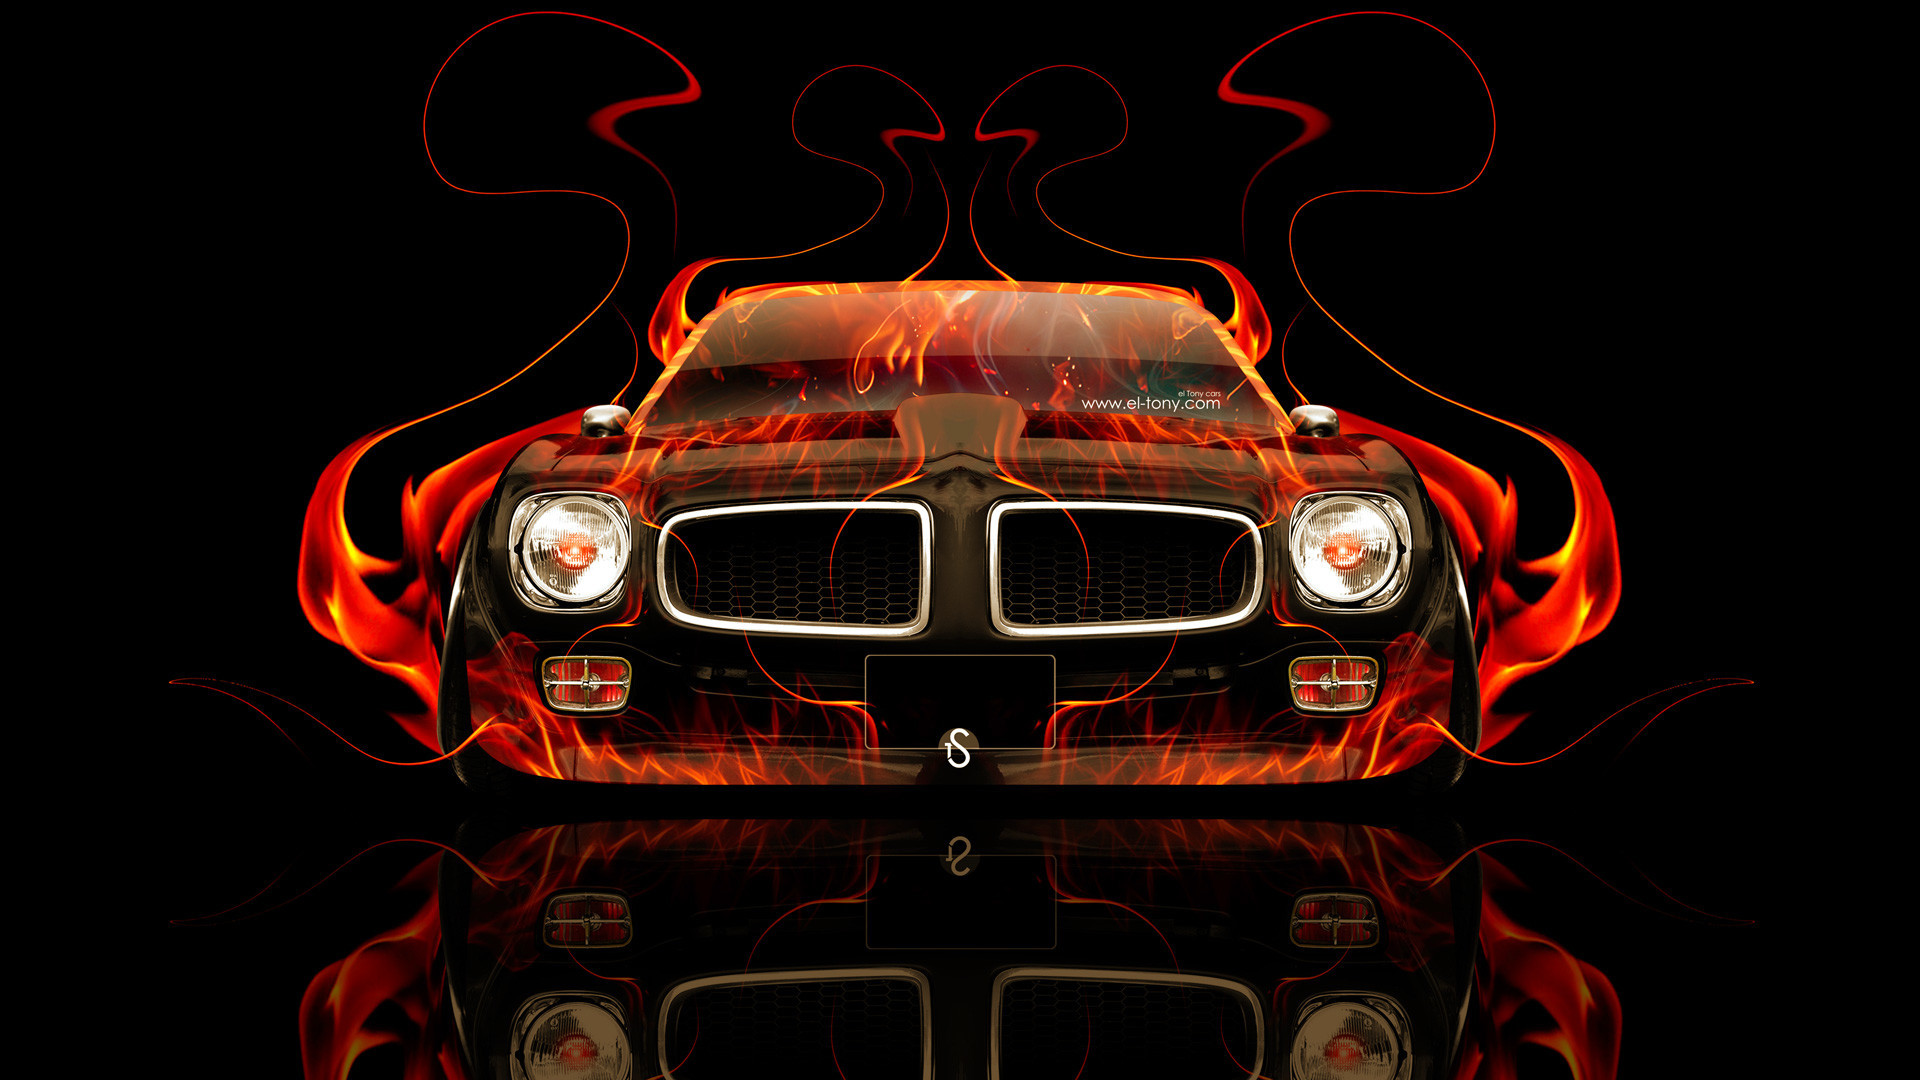 1920x1080  Pontiac-Firebird-Front-Fire-Abstract-Car-2014-HD-